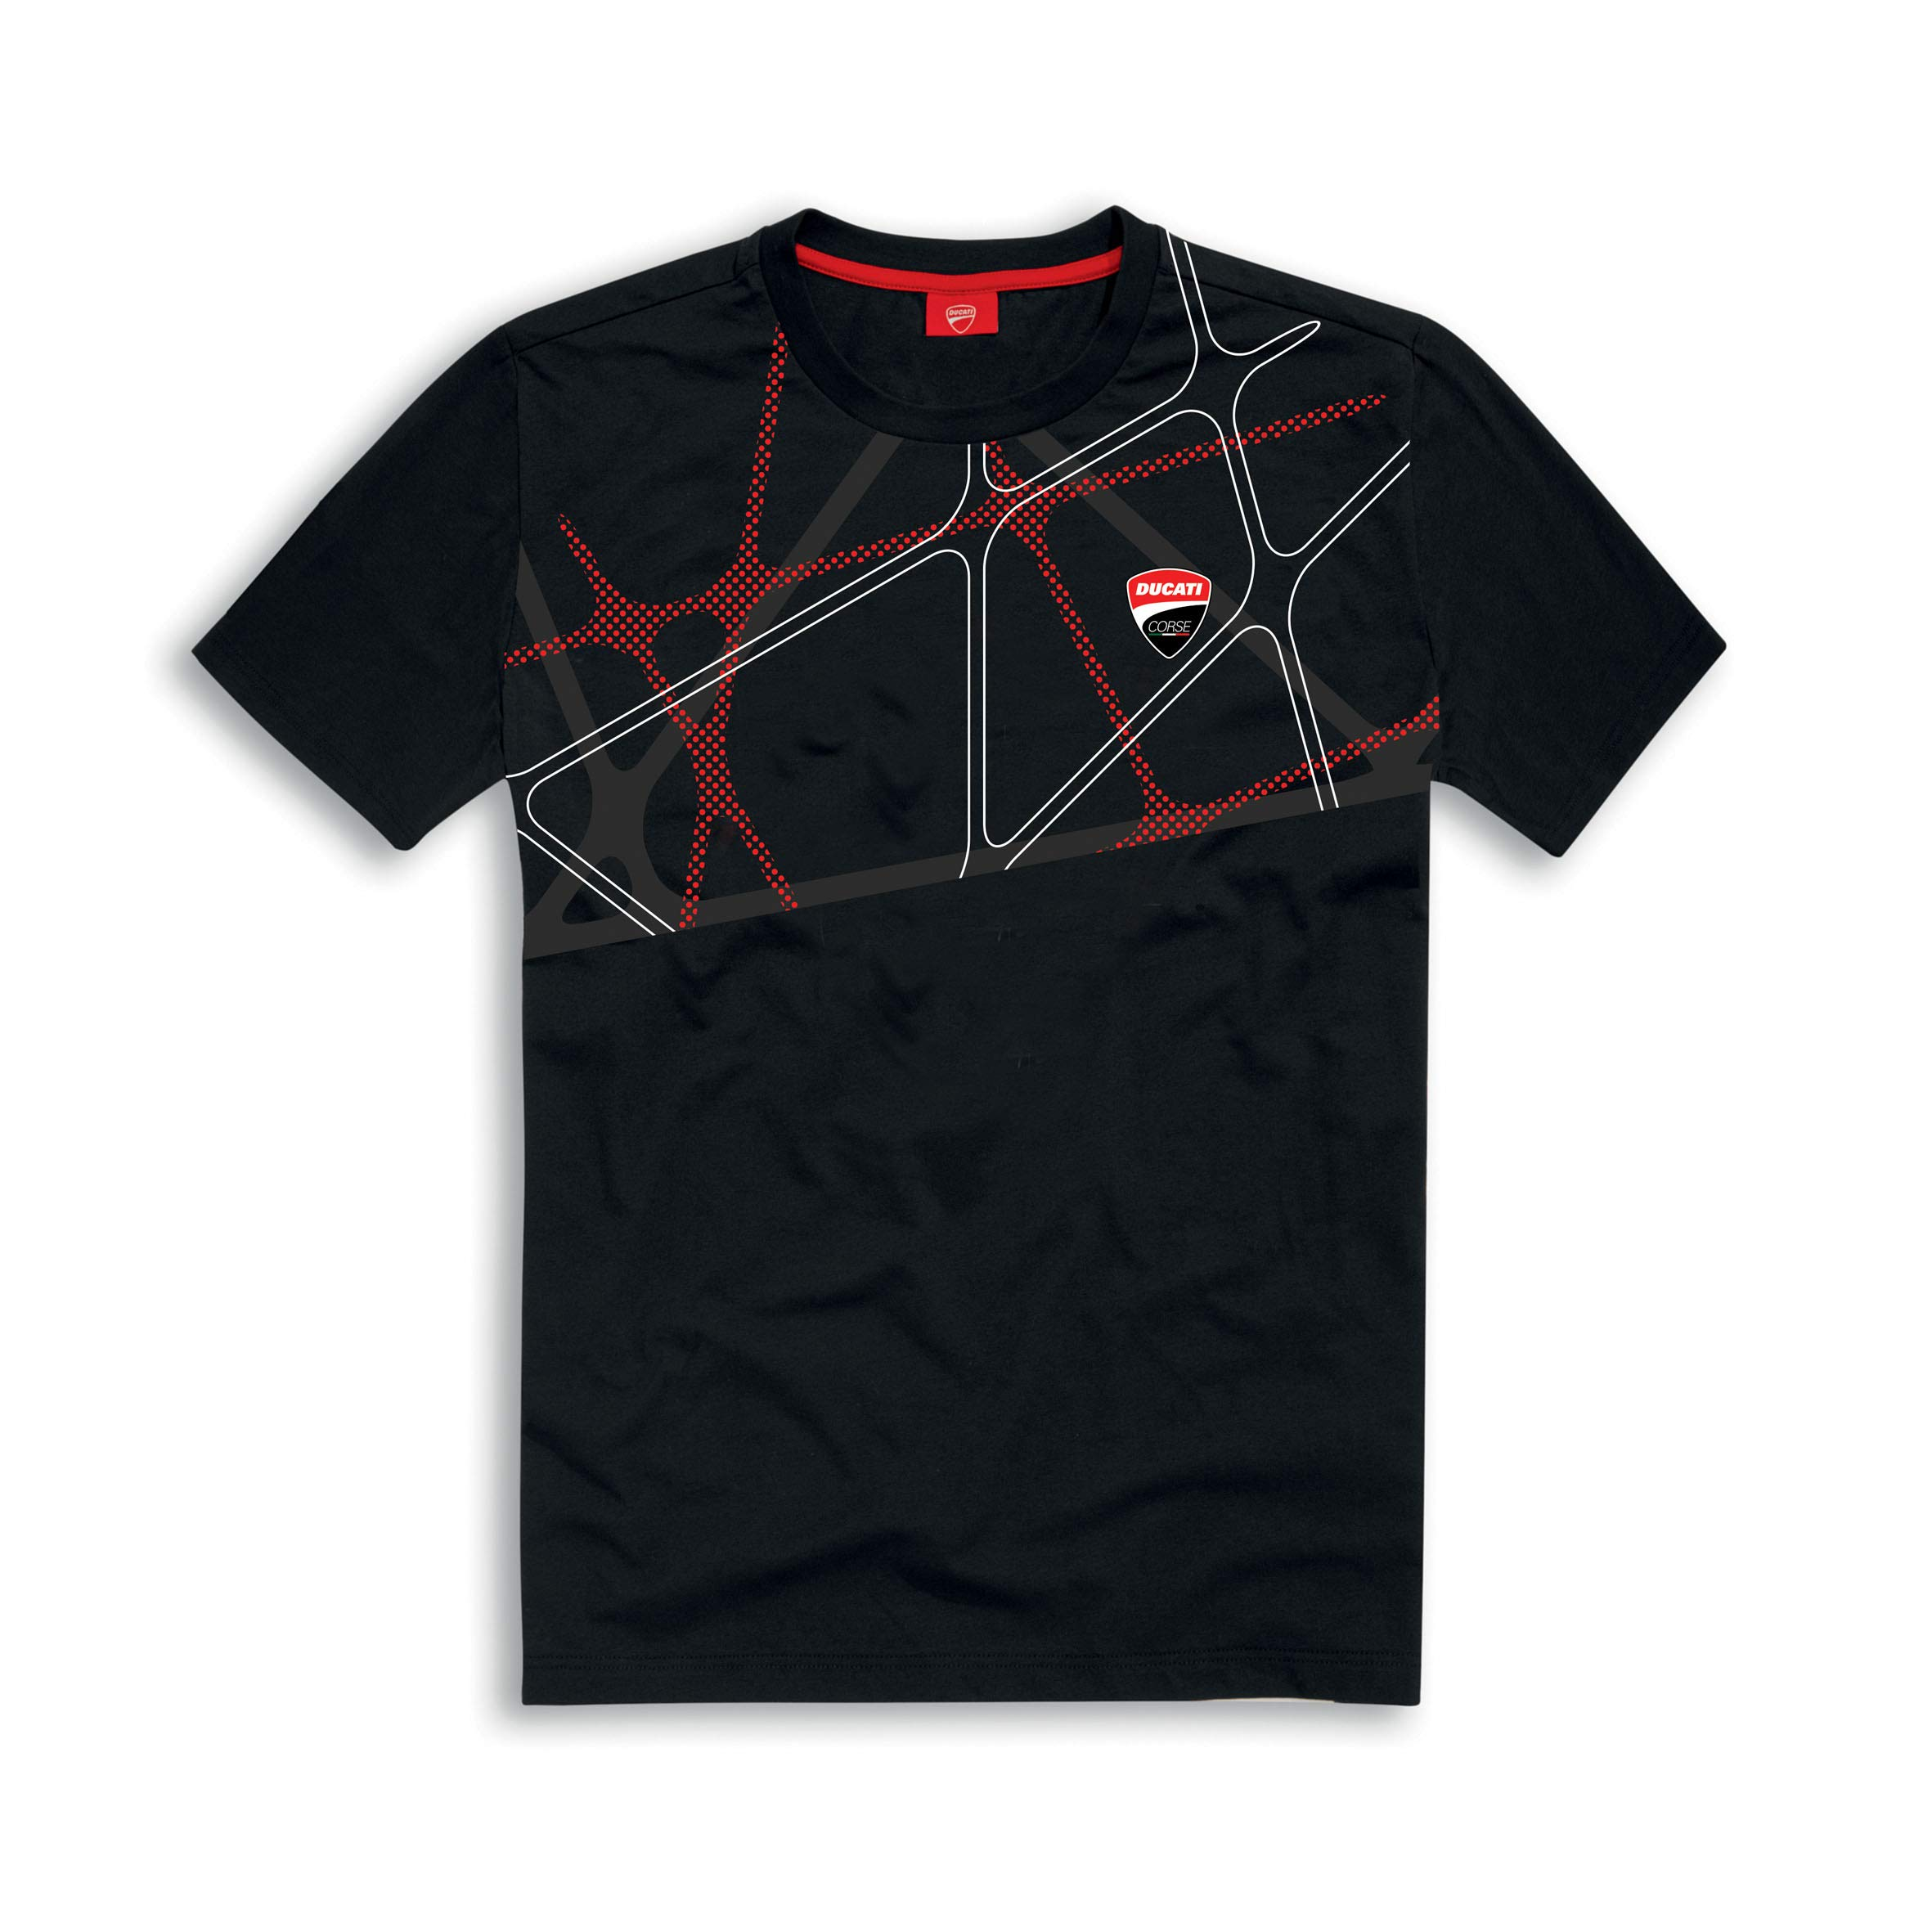 Ducati Corse DC 19 Graphic Net Short Sleeved T-Shirt (2XL, Black) by Ducati